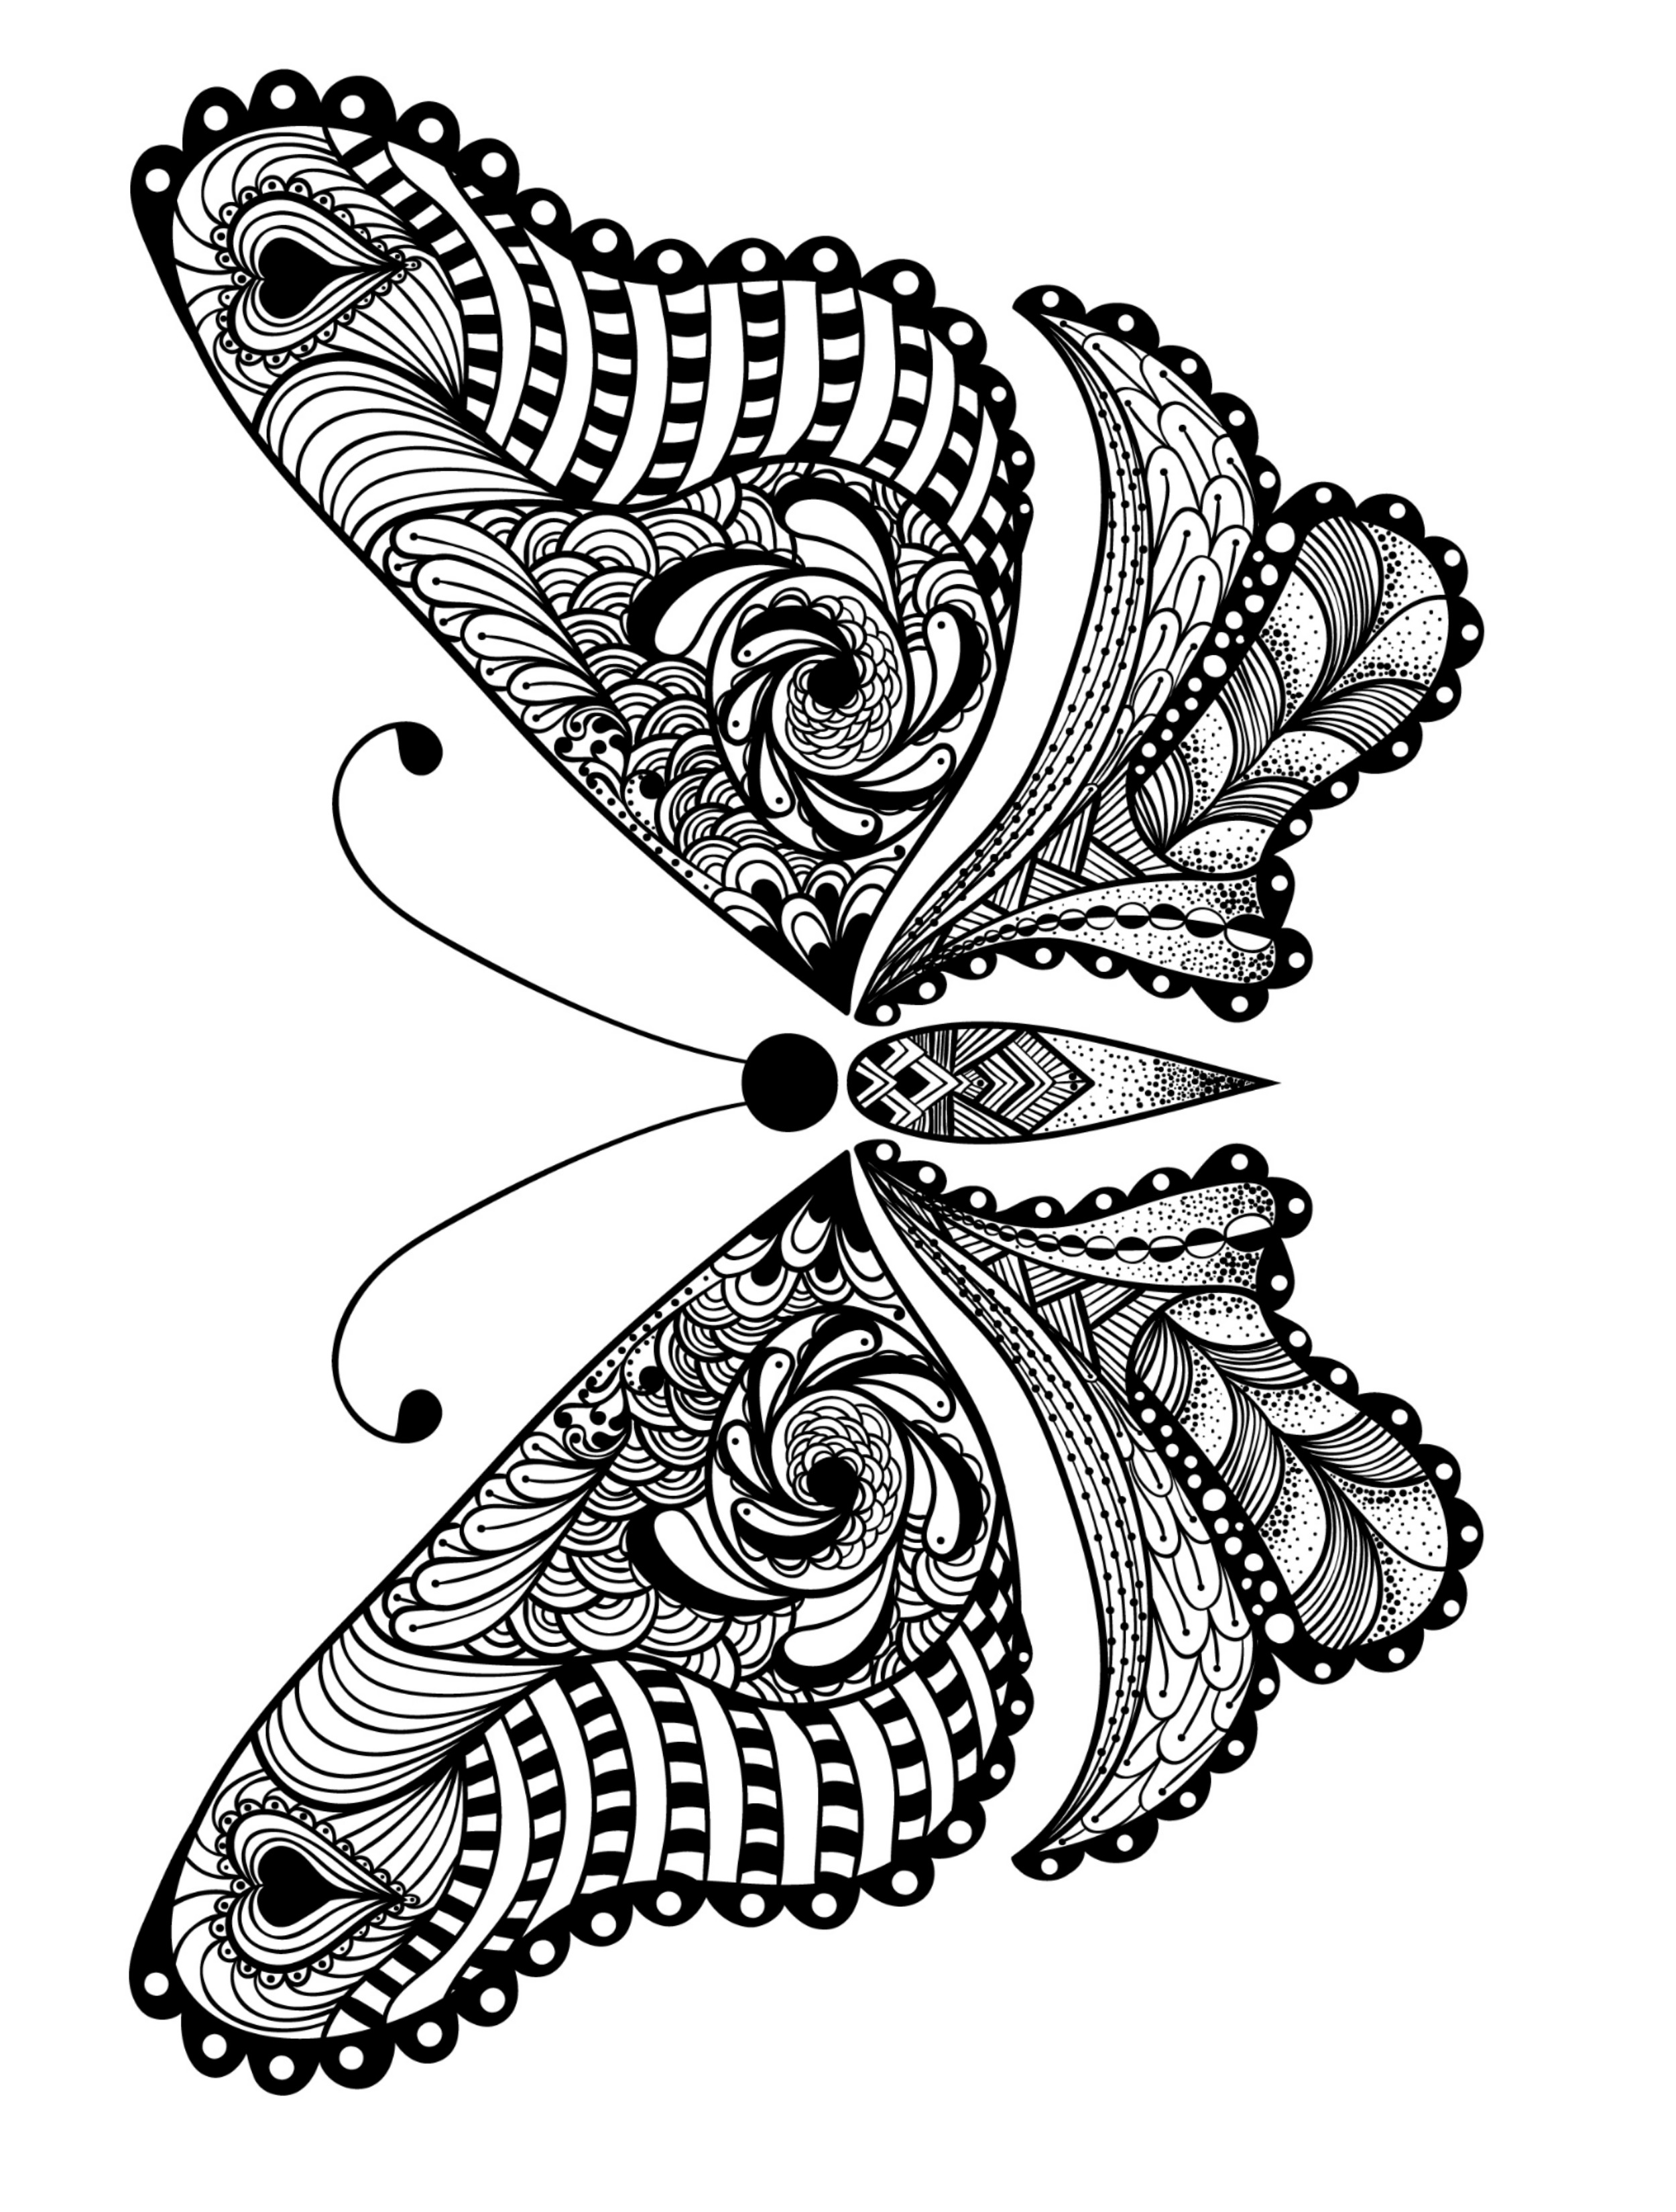 cheetah coloring pages for adults animal coloring pages for adults teens woo jr kids pages cheetah for coloring adults